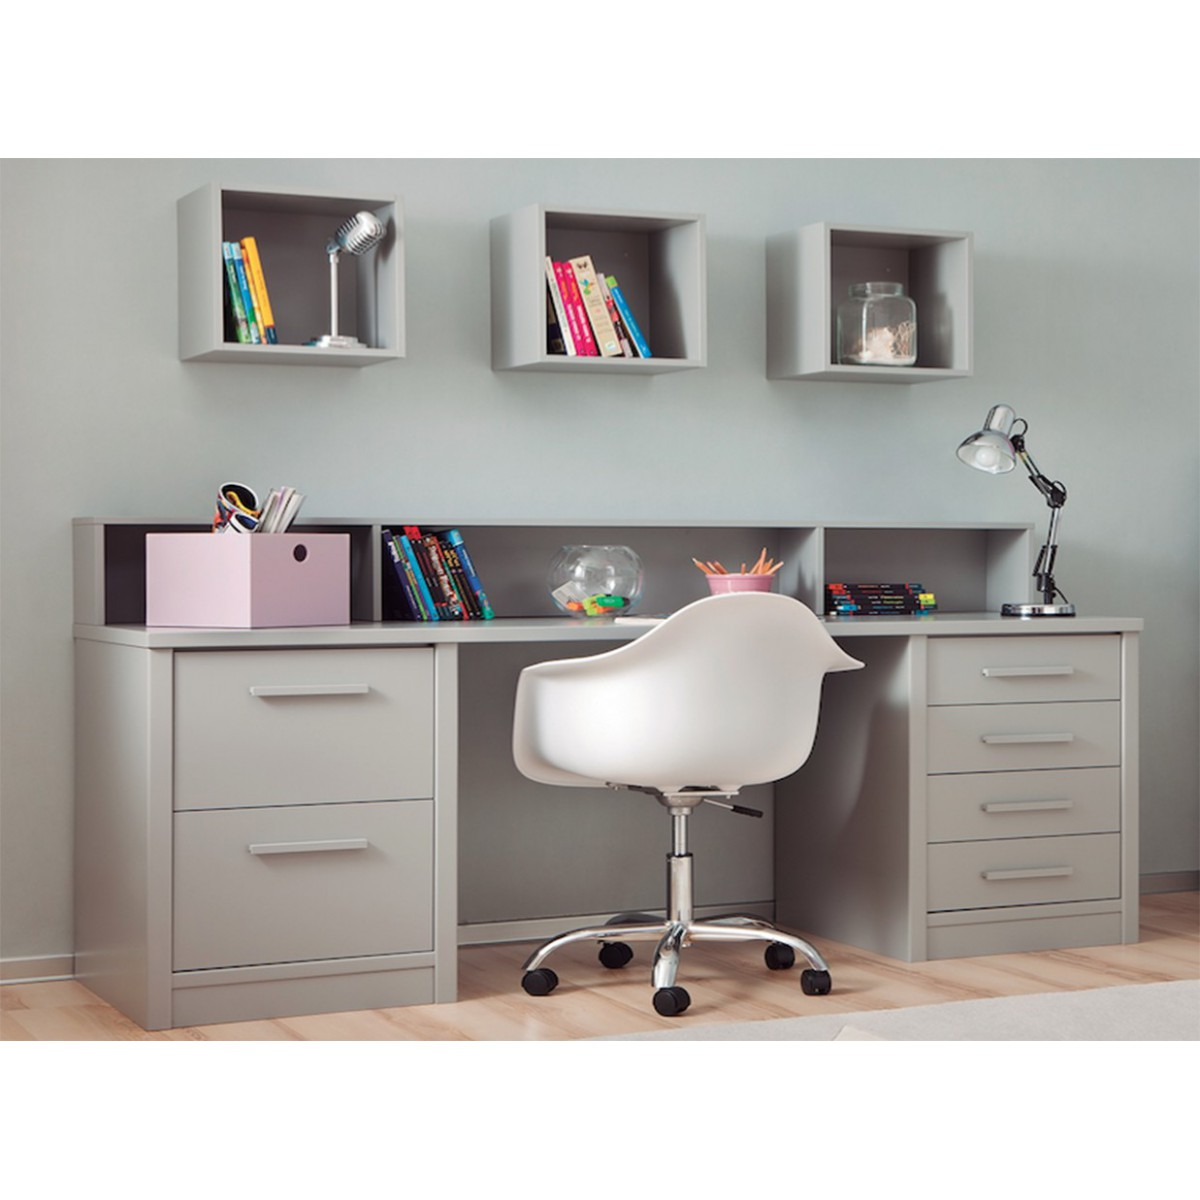 Bureau junior moderne et fonctionnel sign asoral for Bureau 50 cm de longueur